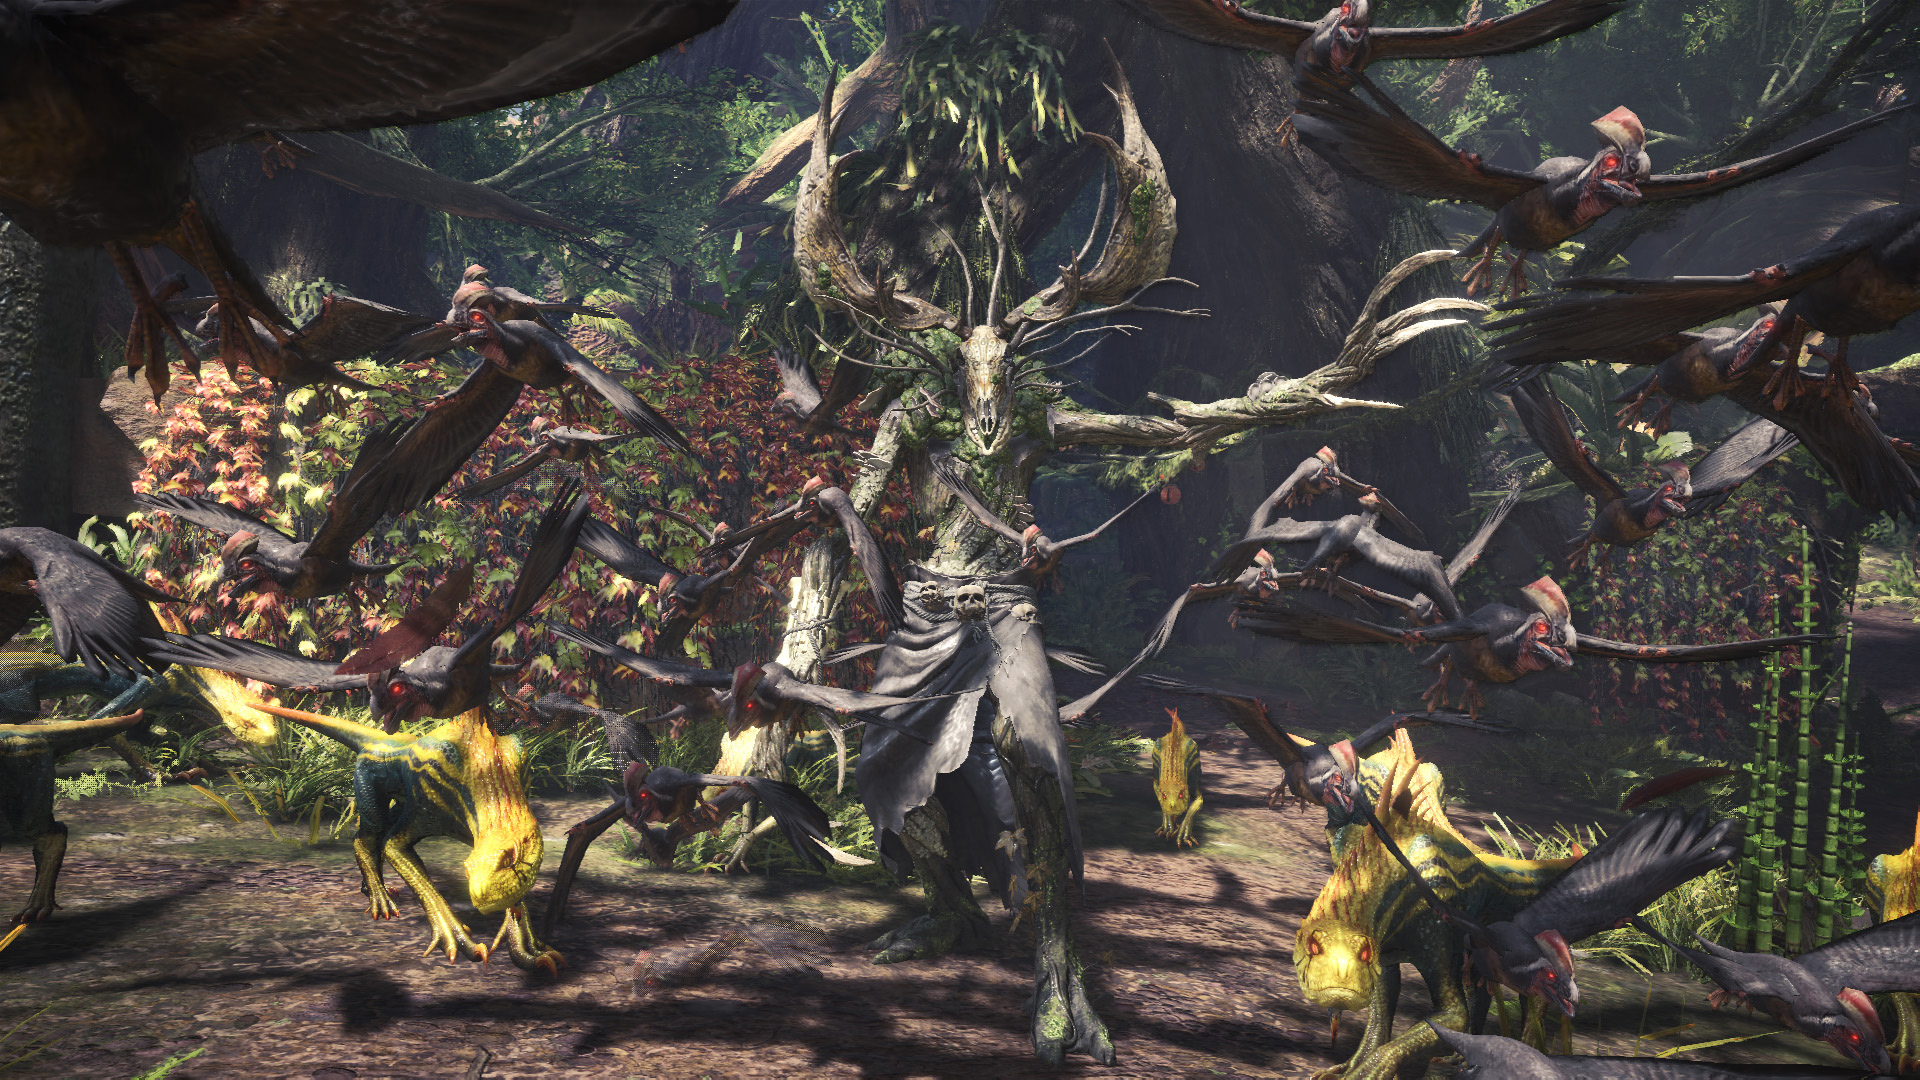 The Witcher quest just dropped in Monster Hunter: World screenshot